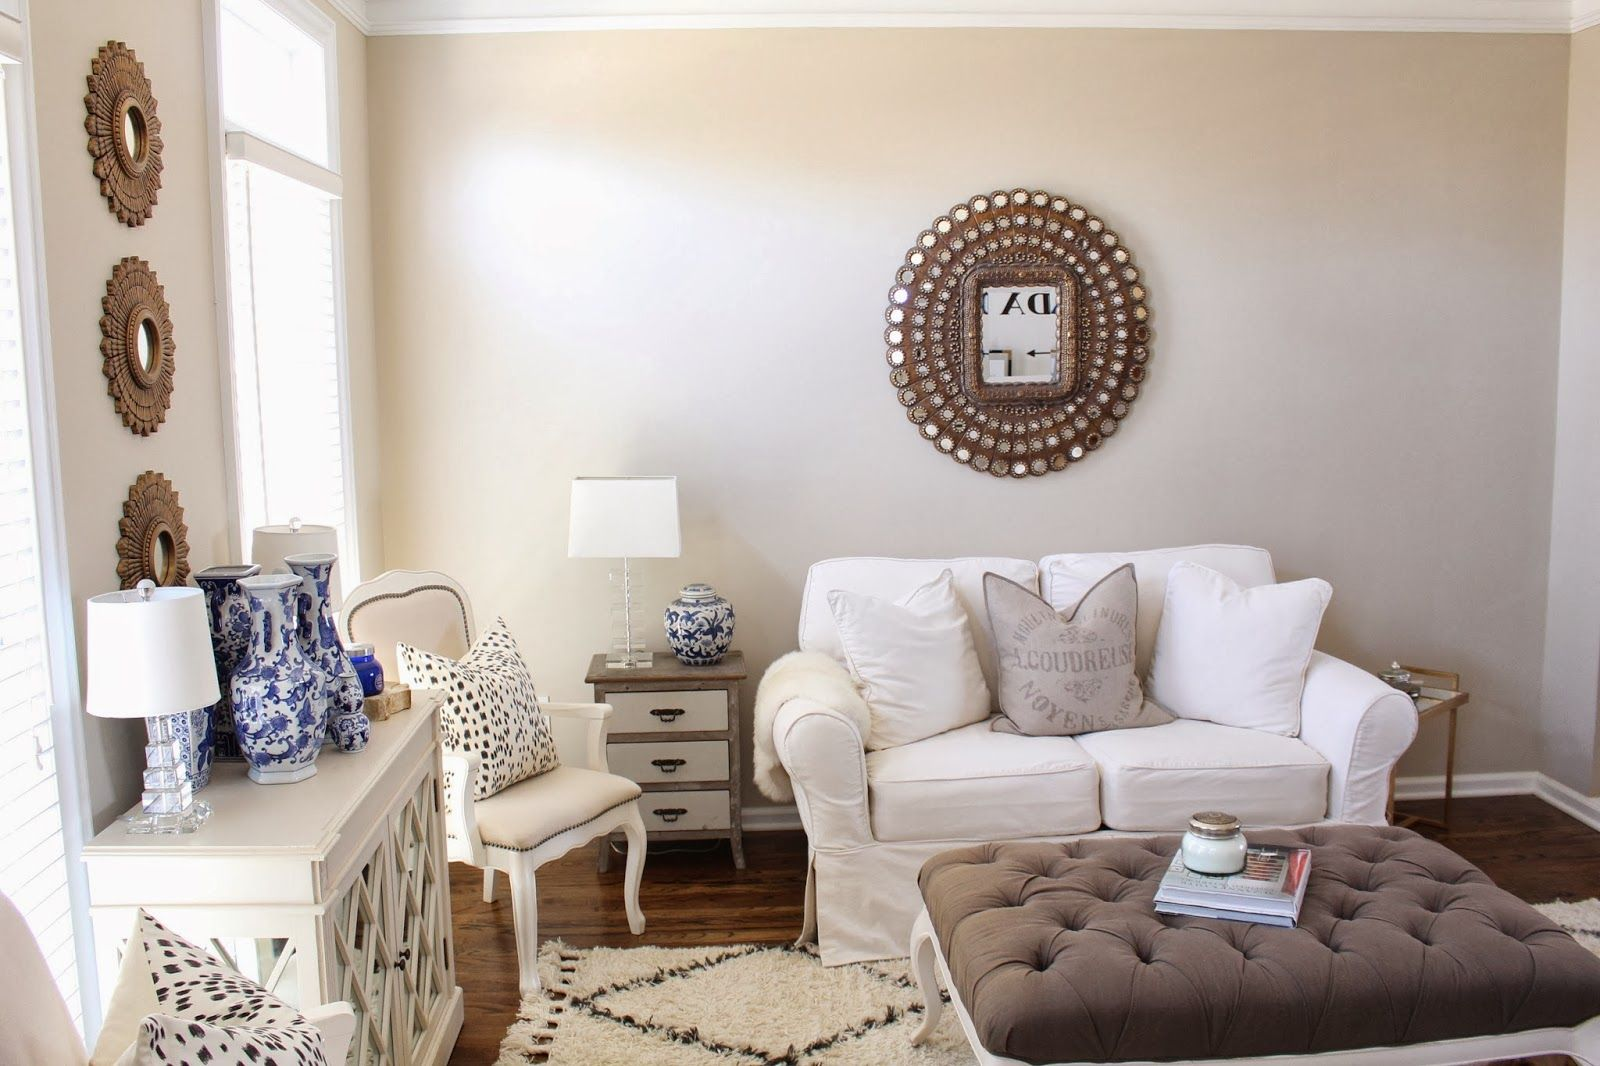 Benjamin Moore Clay Beige - TiffanyD: A fresh coat of paint in my ...